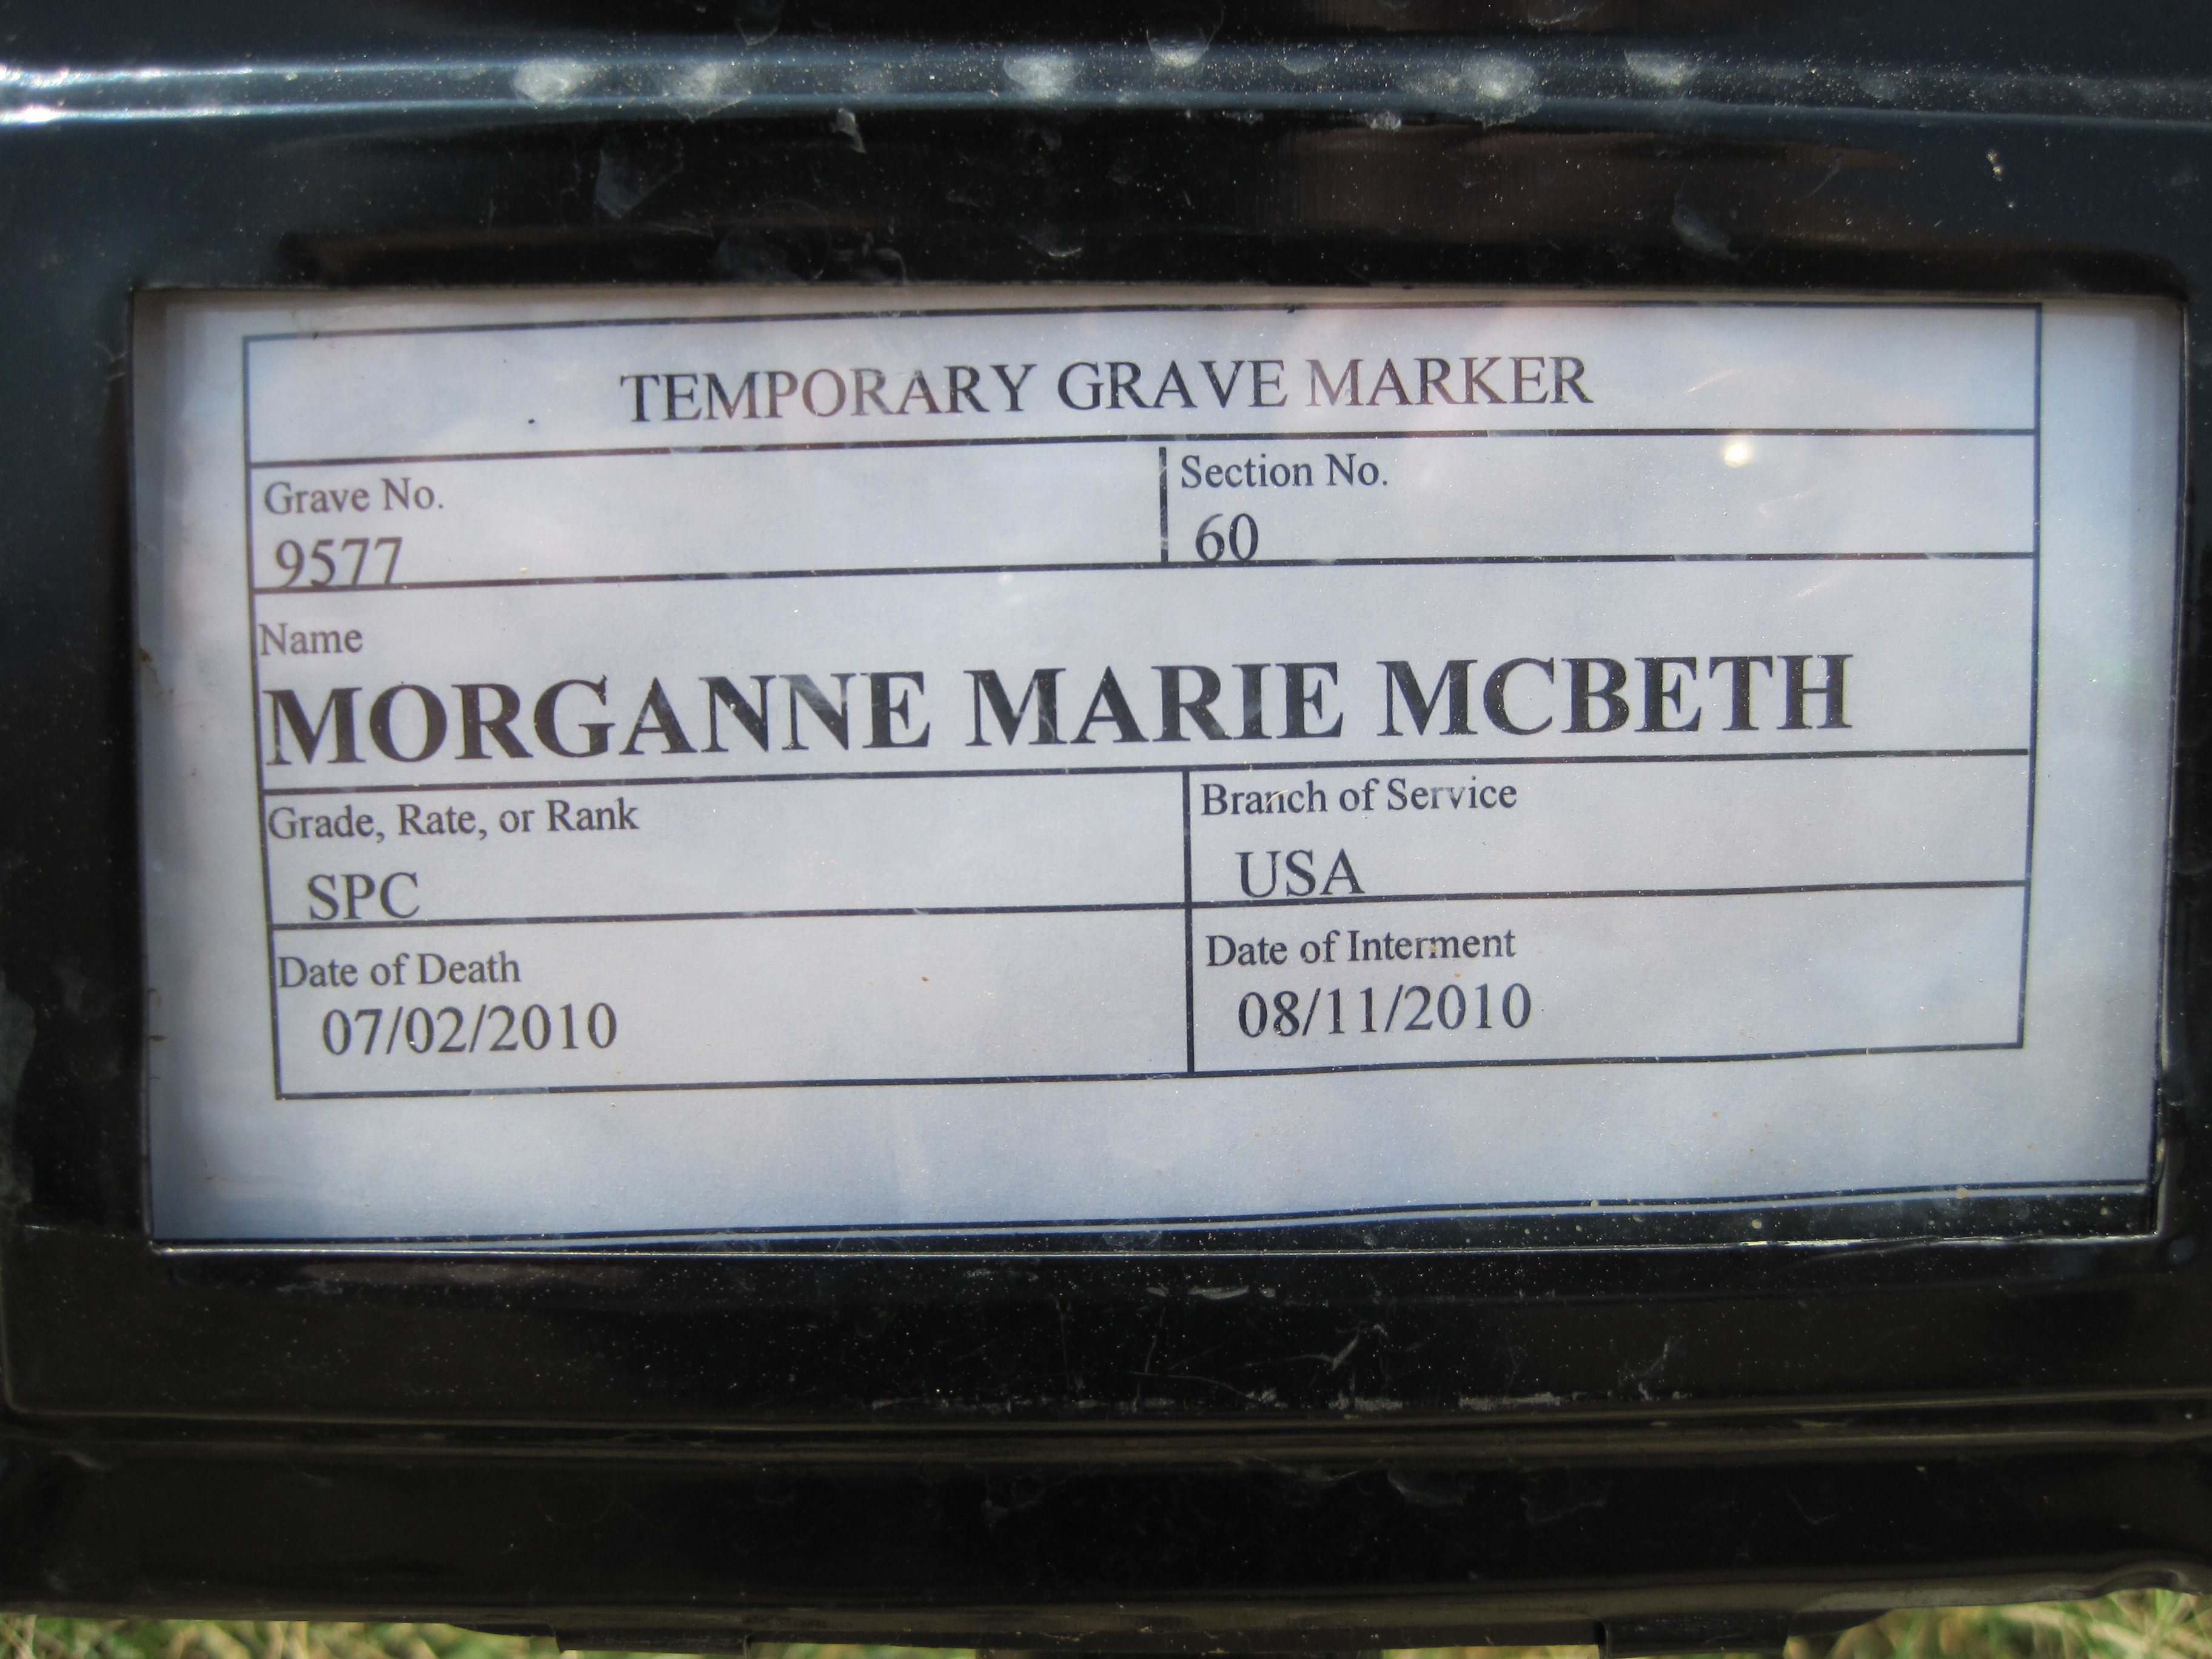 marathon boat lift motor wiring diagram 1994 jeep cherokee stereo morganne marie mcbeth specialist united states army mm gravesite photo by eileen horan august 2010